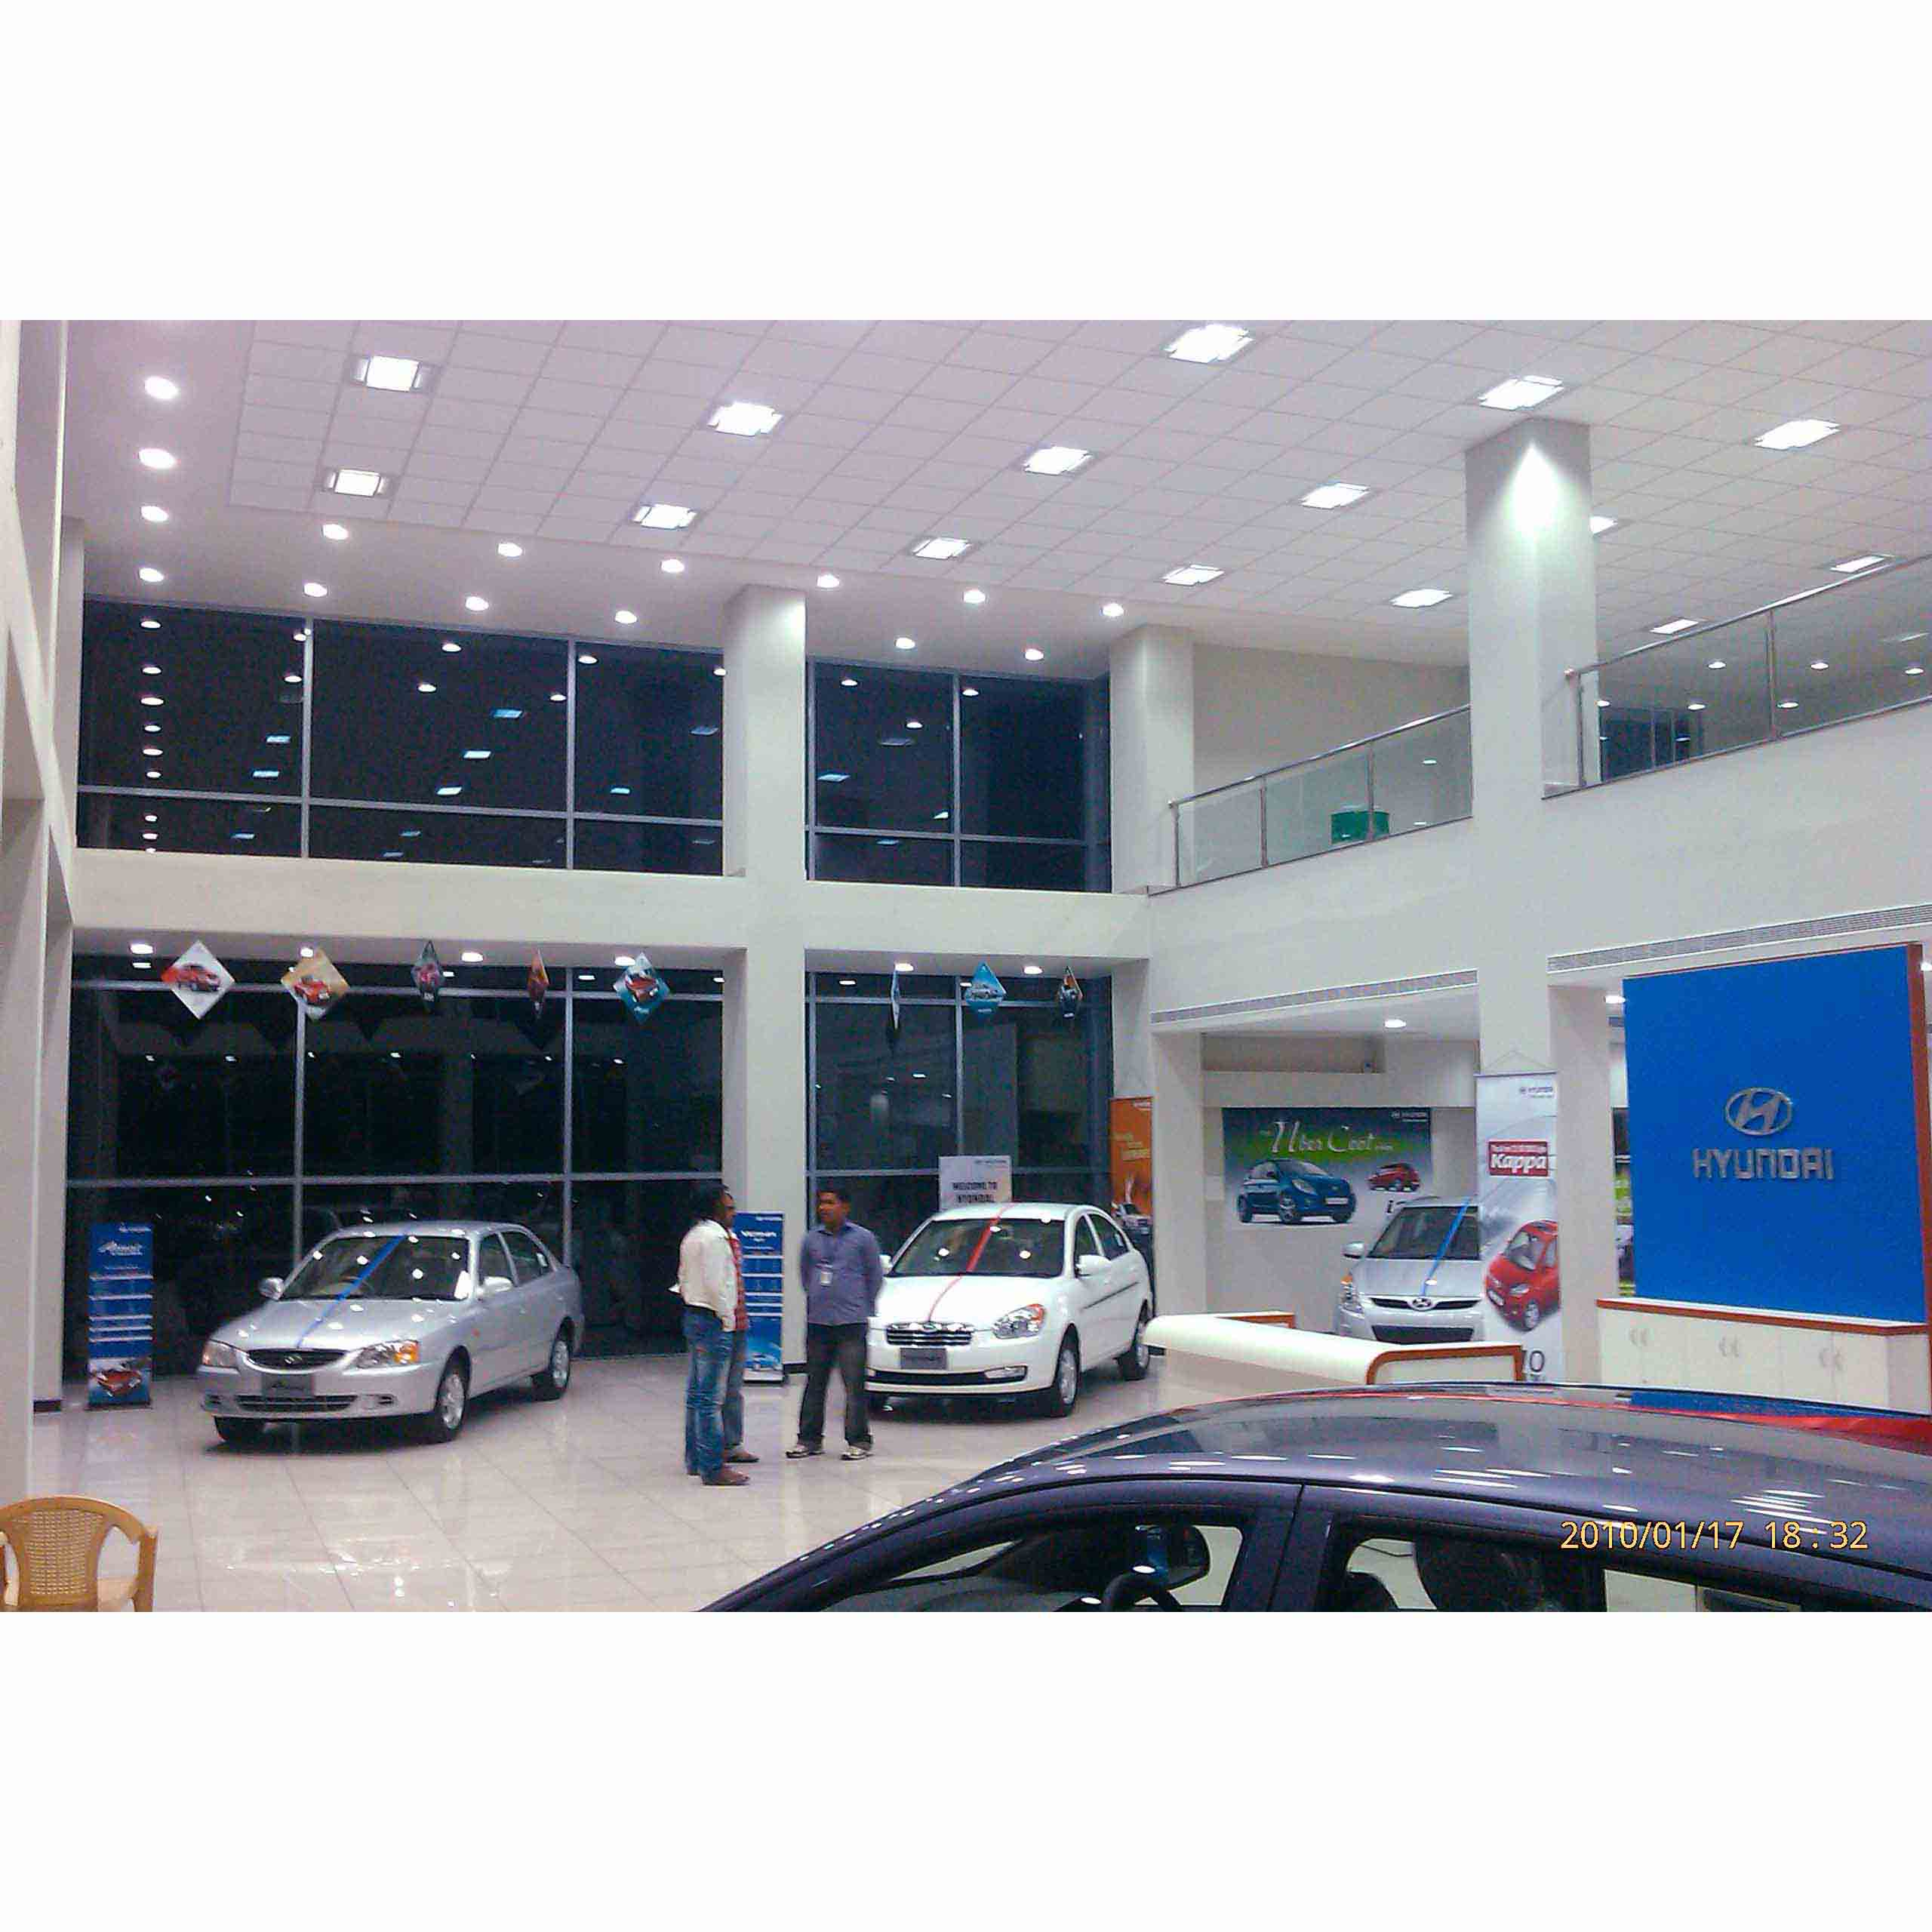 Hyundai Showroom designed by Architects Ravi & Neelima Siddhartha